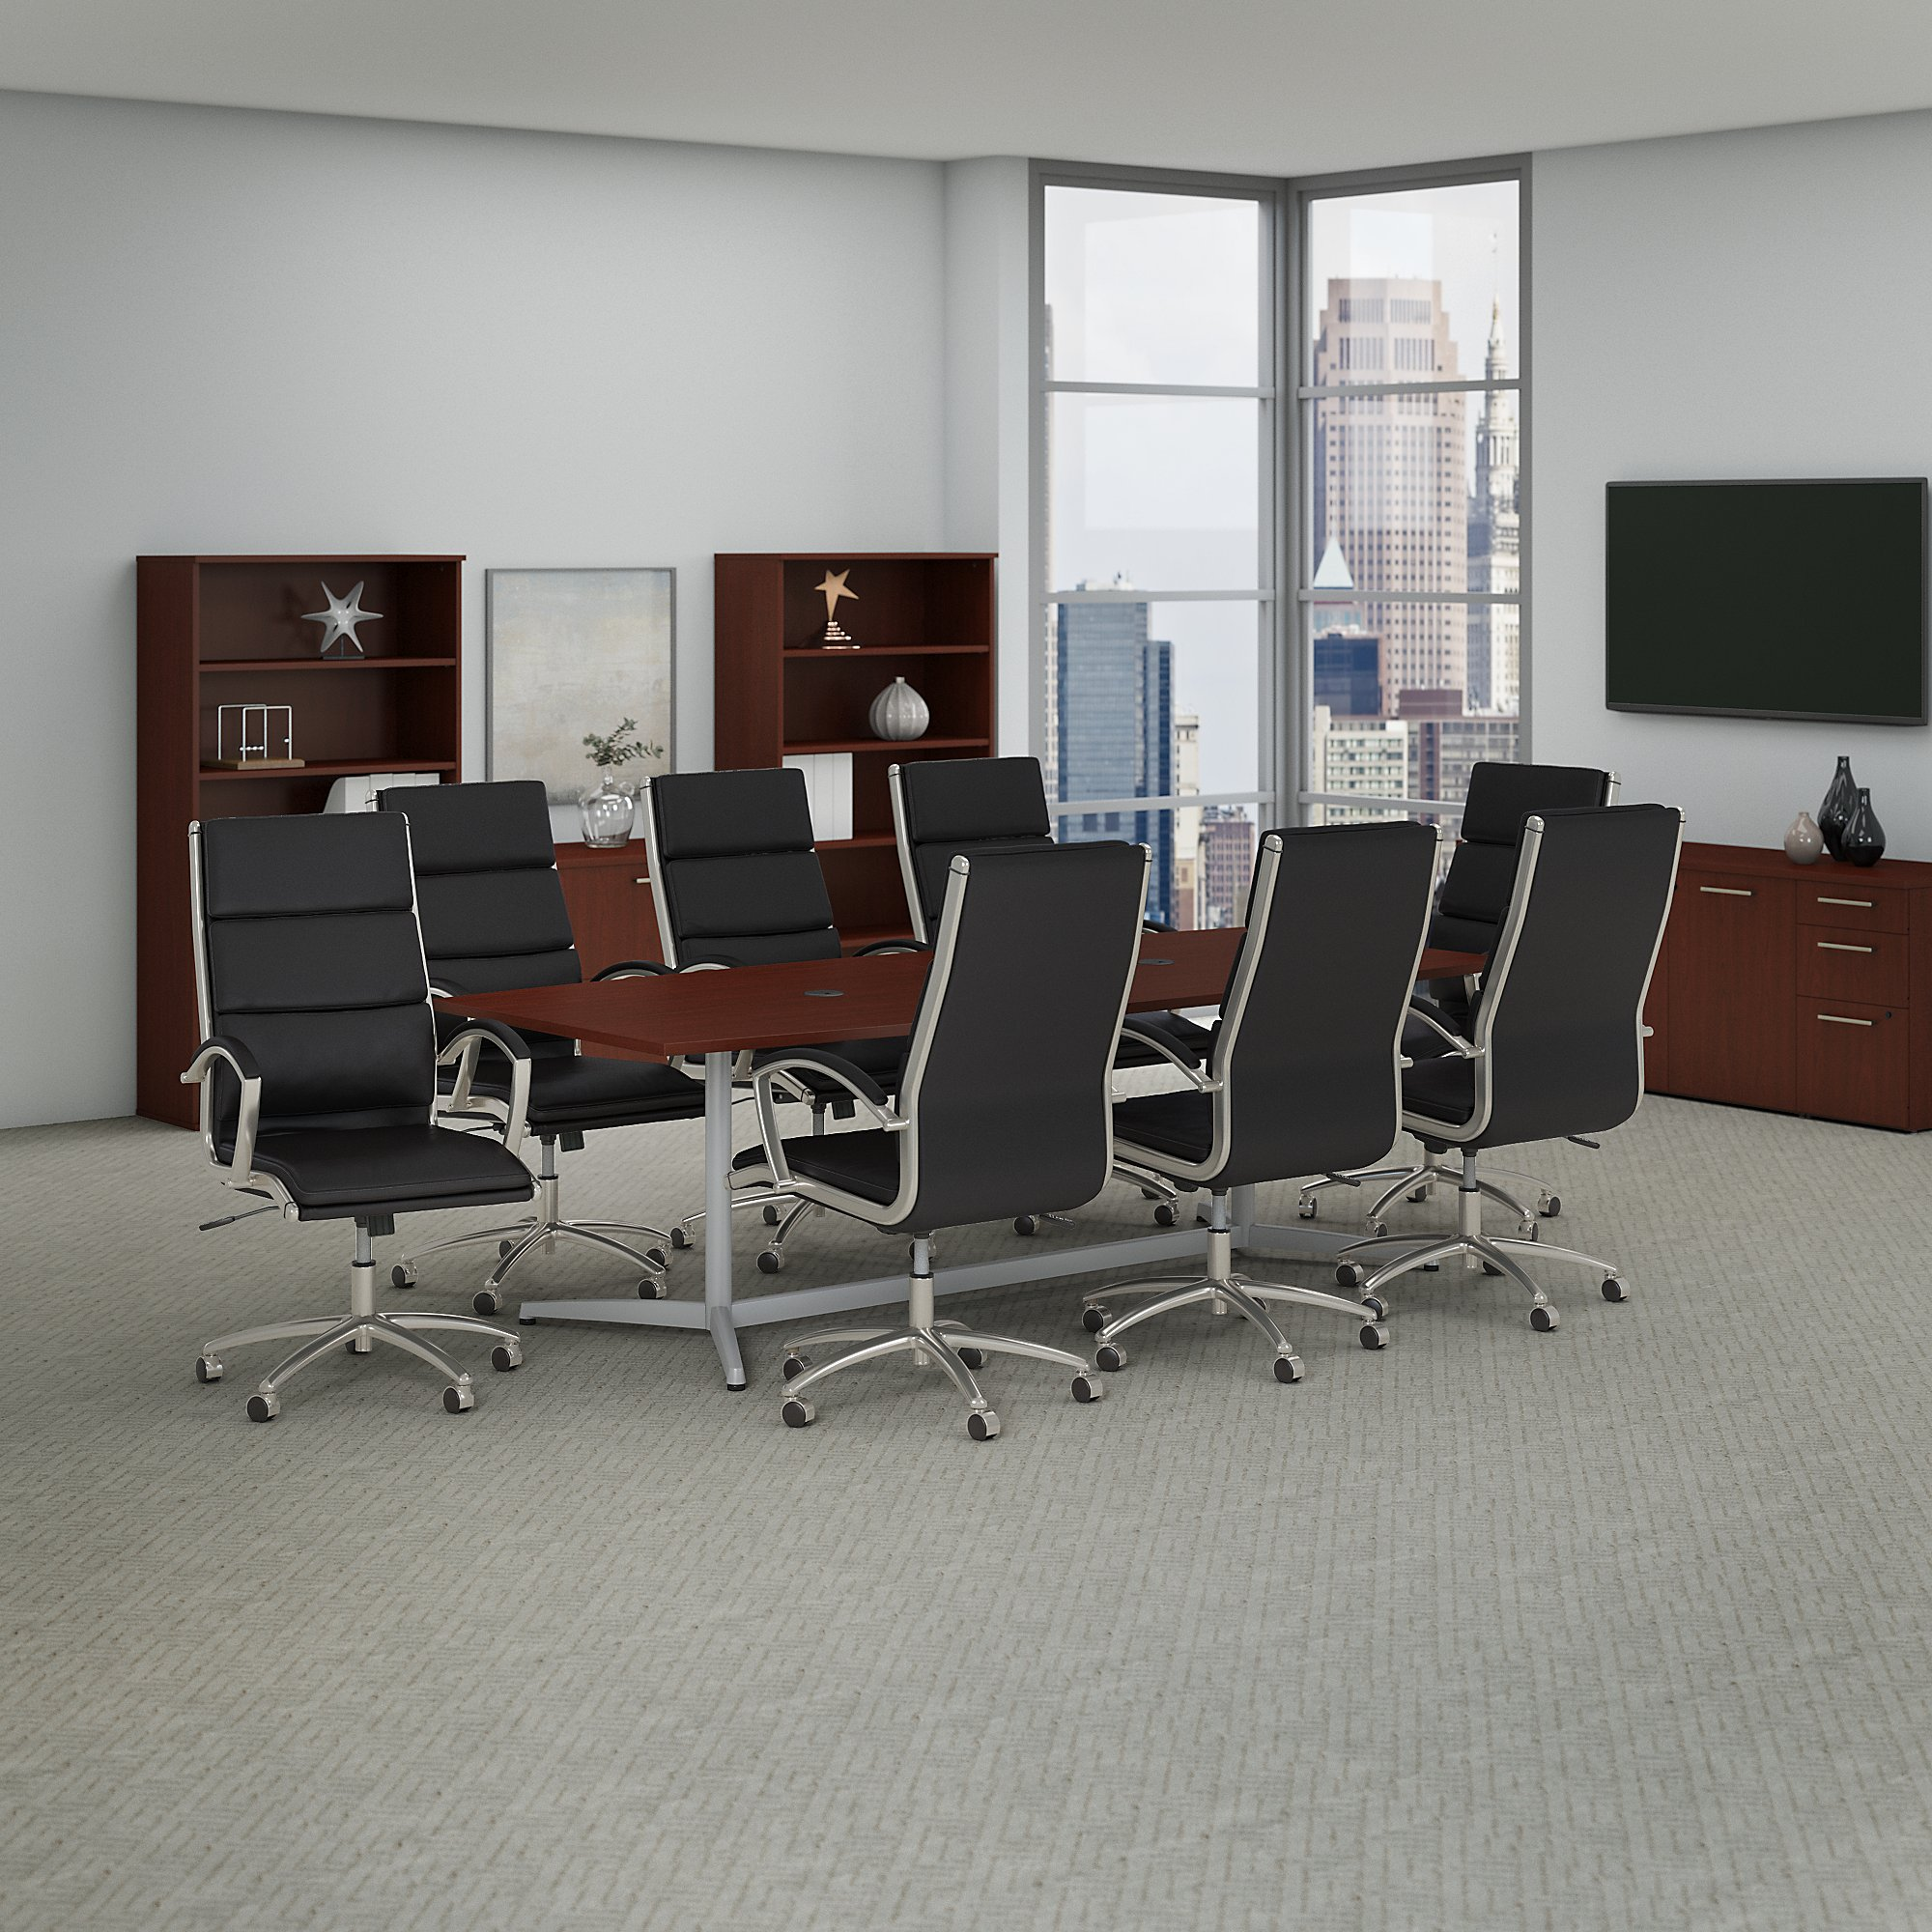 Outstanding Bush Business Furniture 96W X 42D Boat Shaped Conference Table And Set Of 8 High Back Office Chairs Download Free Architecture Designs Intelgarnamadebymaigaardcom